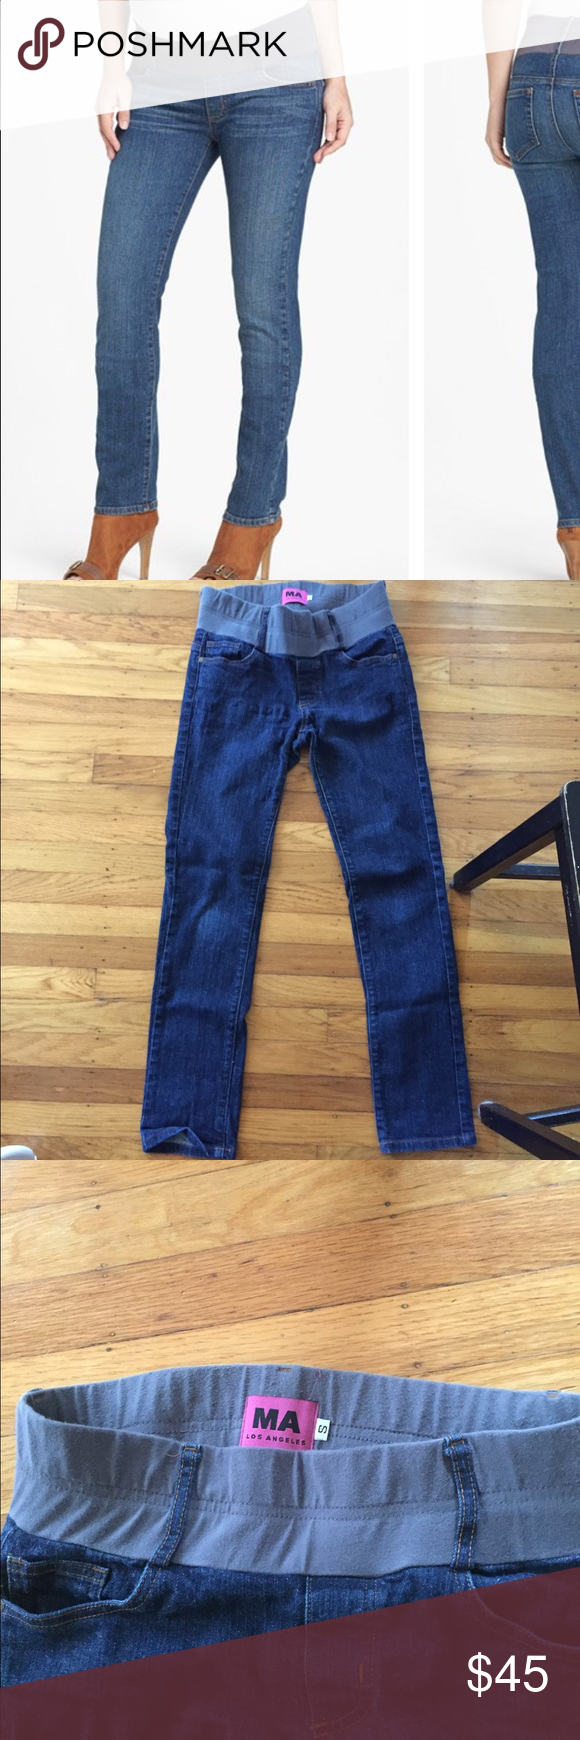 Matenal America maternity jeans Wide elastic band. Very comfortable for early pregnancy and post-par...